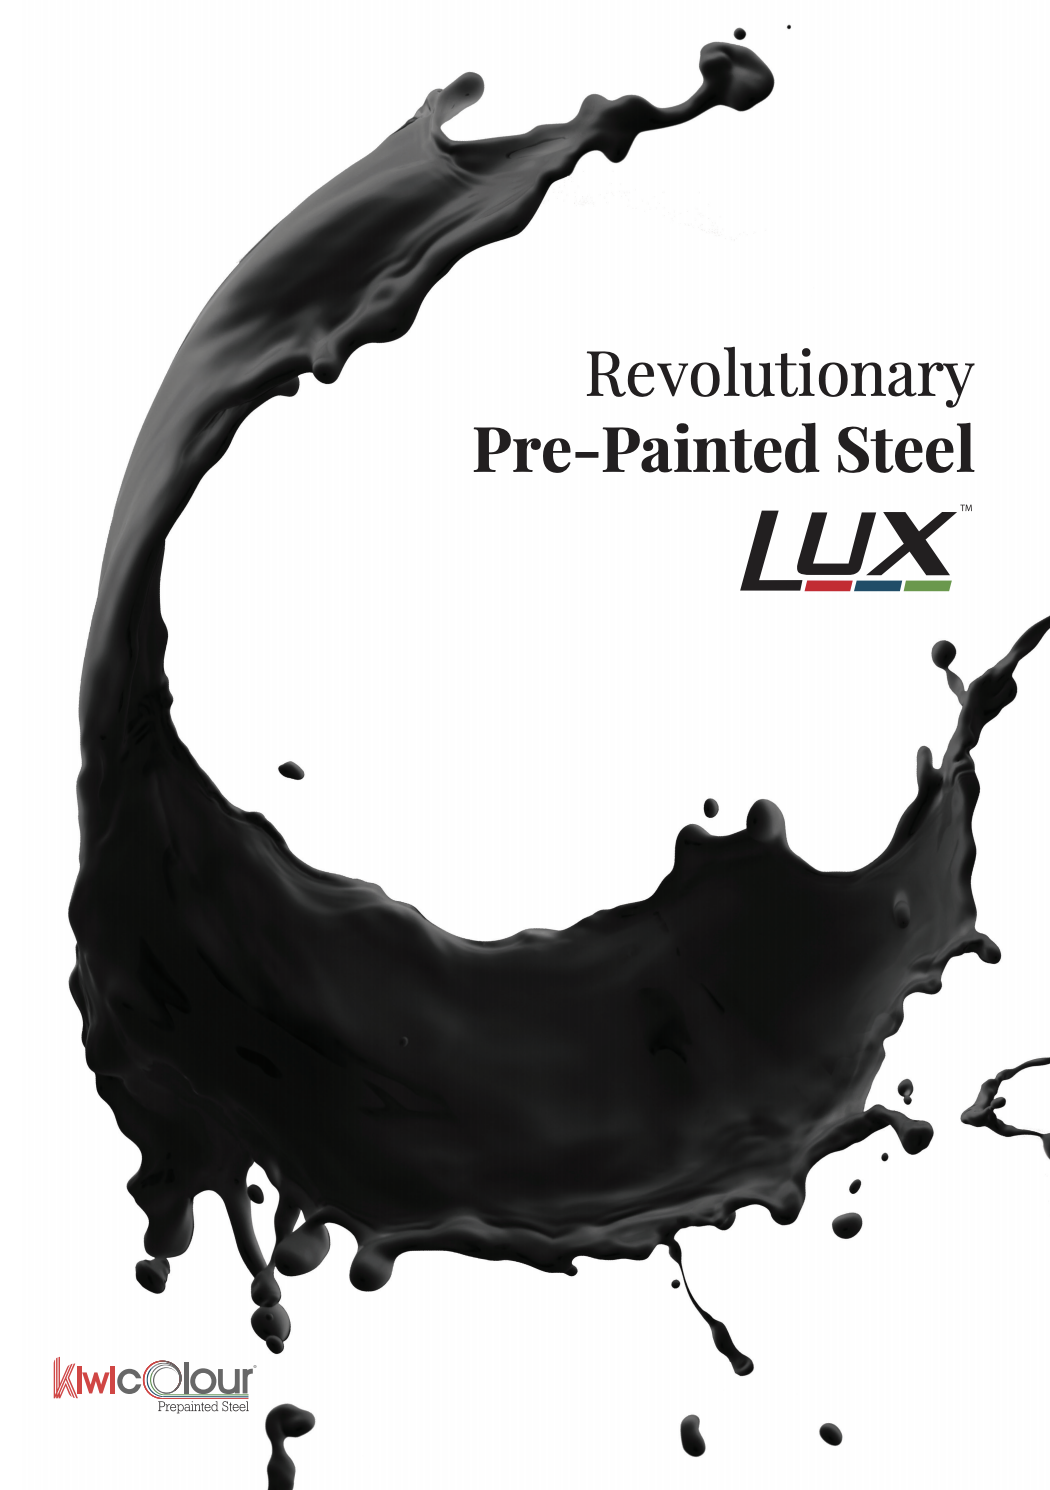 Lux by KiwiColour - Pre-painted Steel Brochure.png